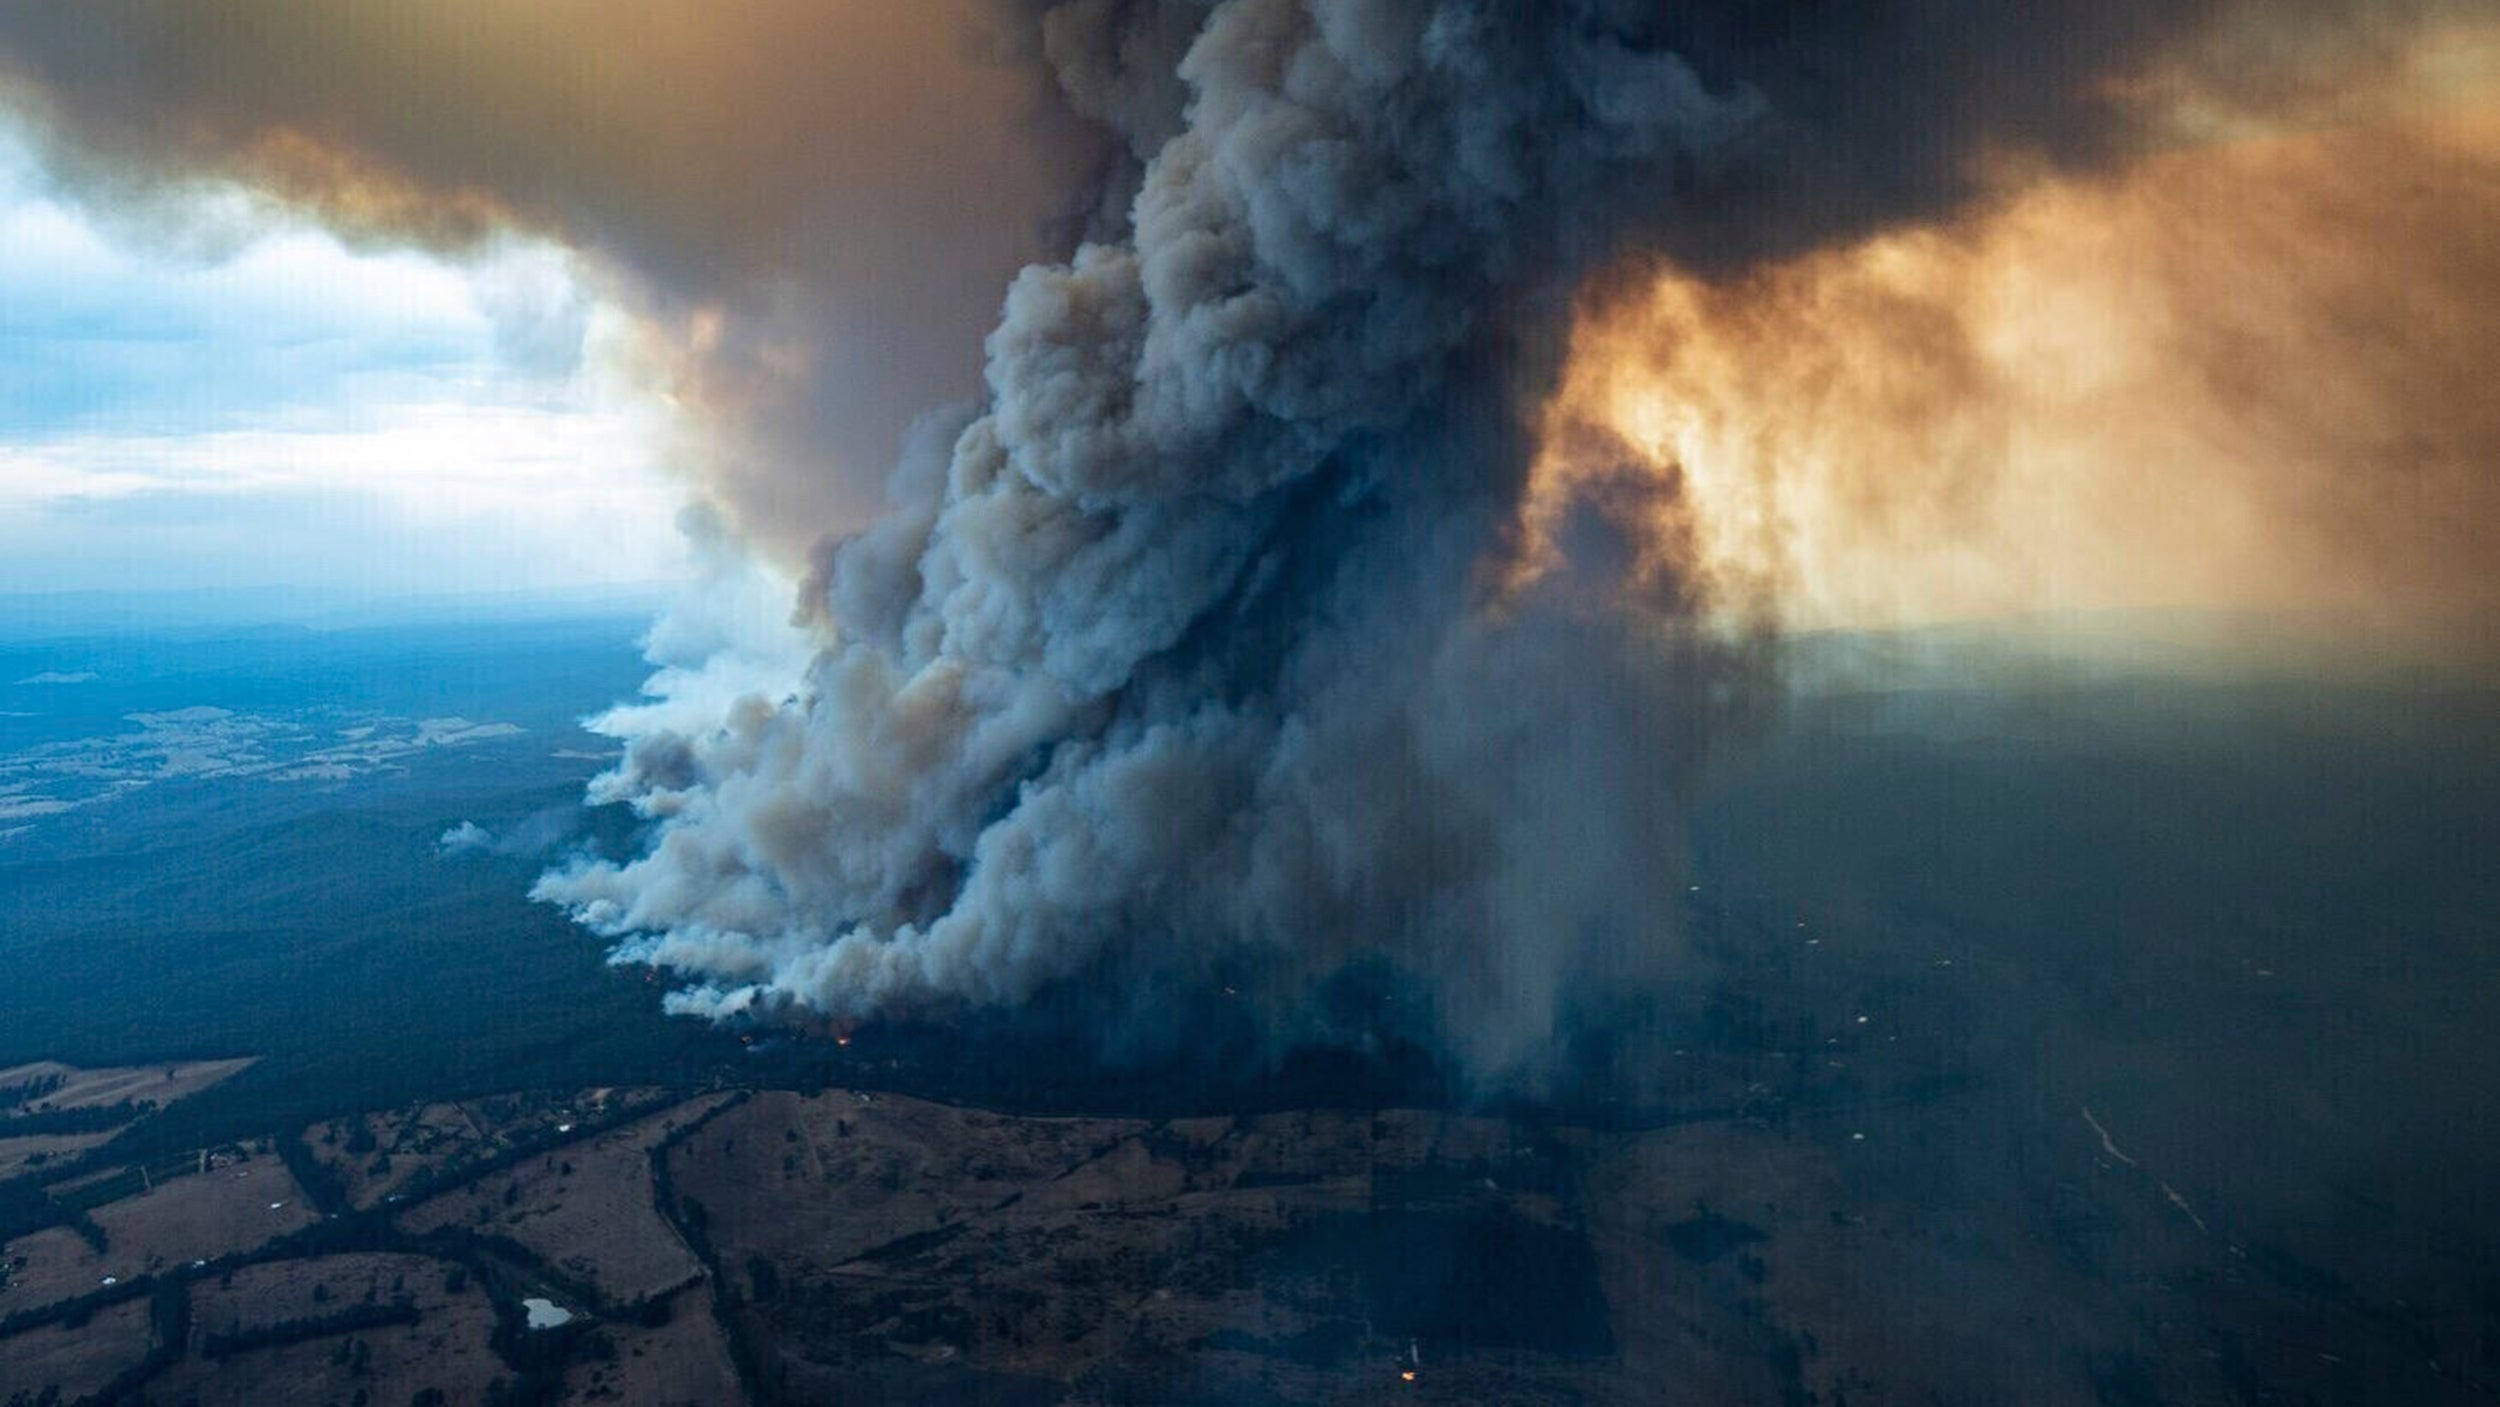 Aerial shot of massive plume of smoke rising from Australia wildfires.